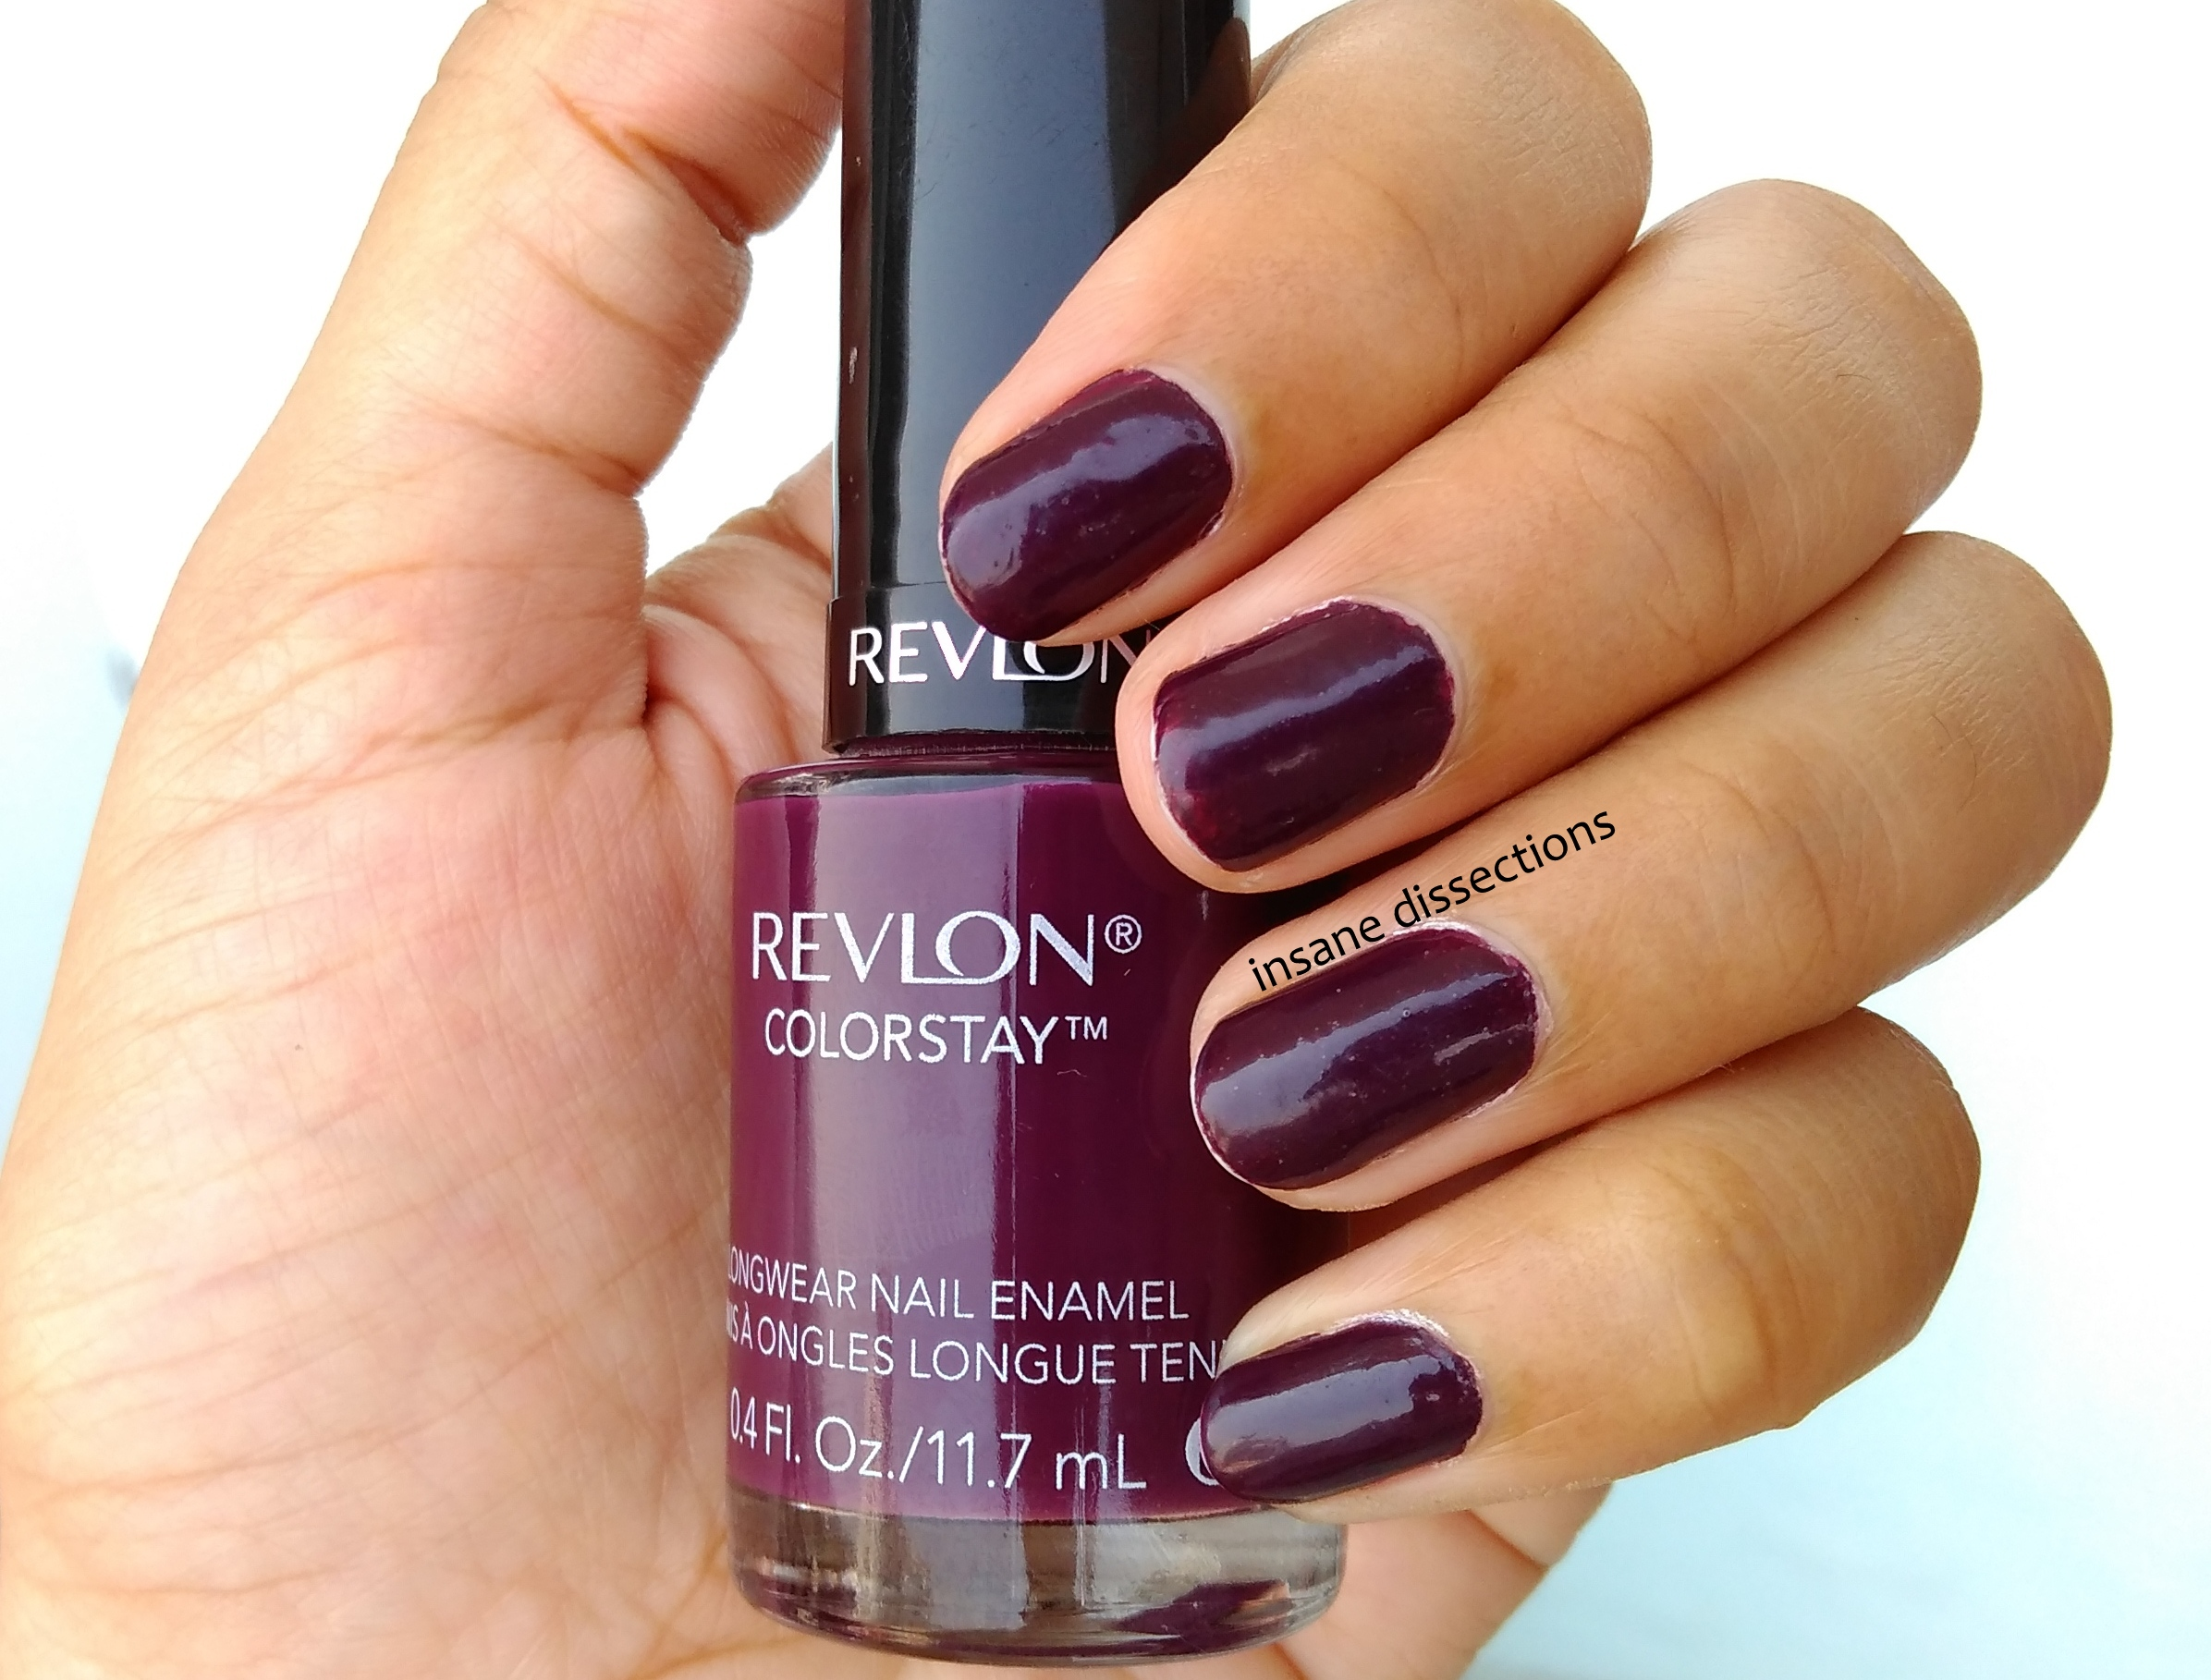 deep-purple-nails | Insane Dissections